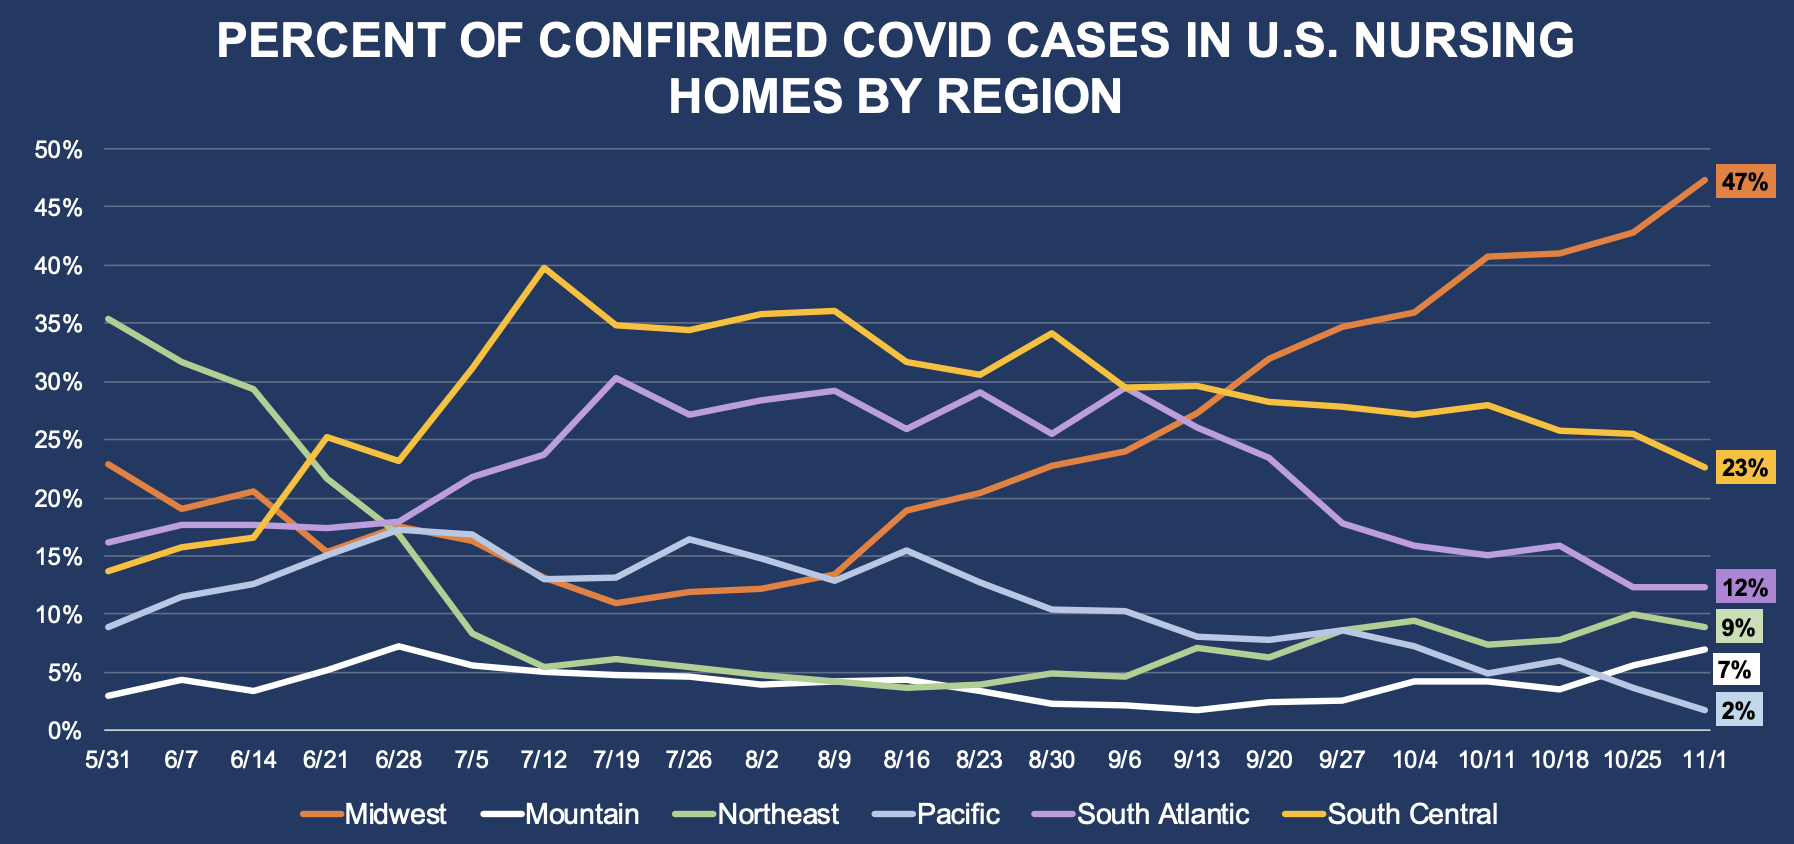 Percent Of Confirmed COVID Cases In U.S. Nursing Homes By Region